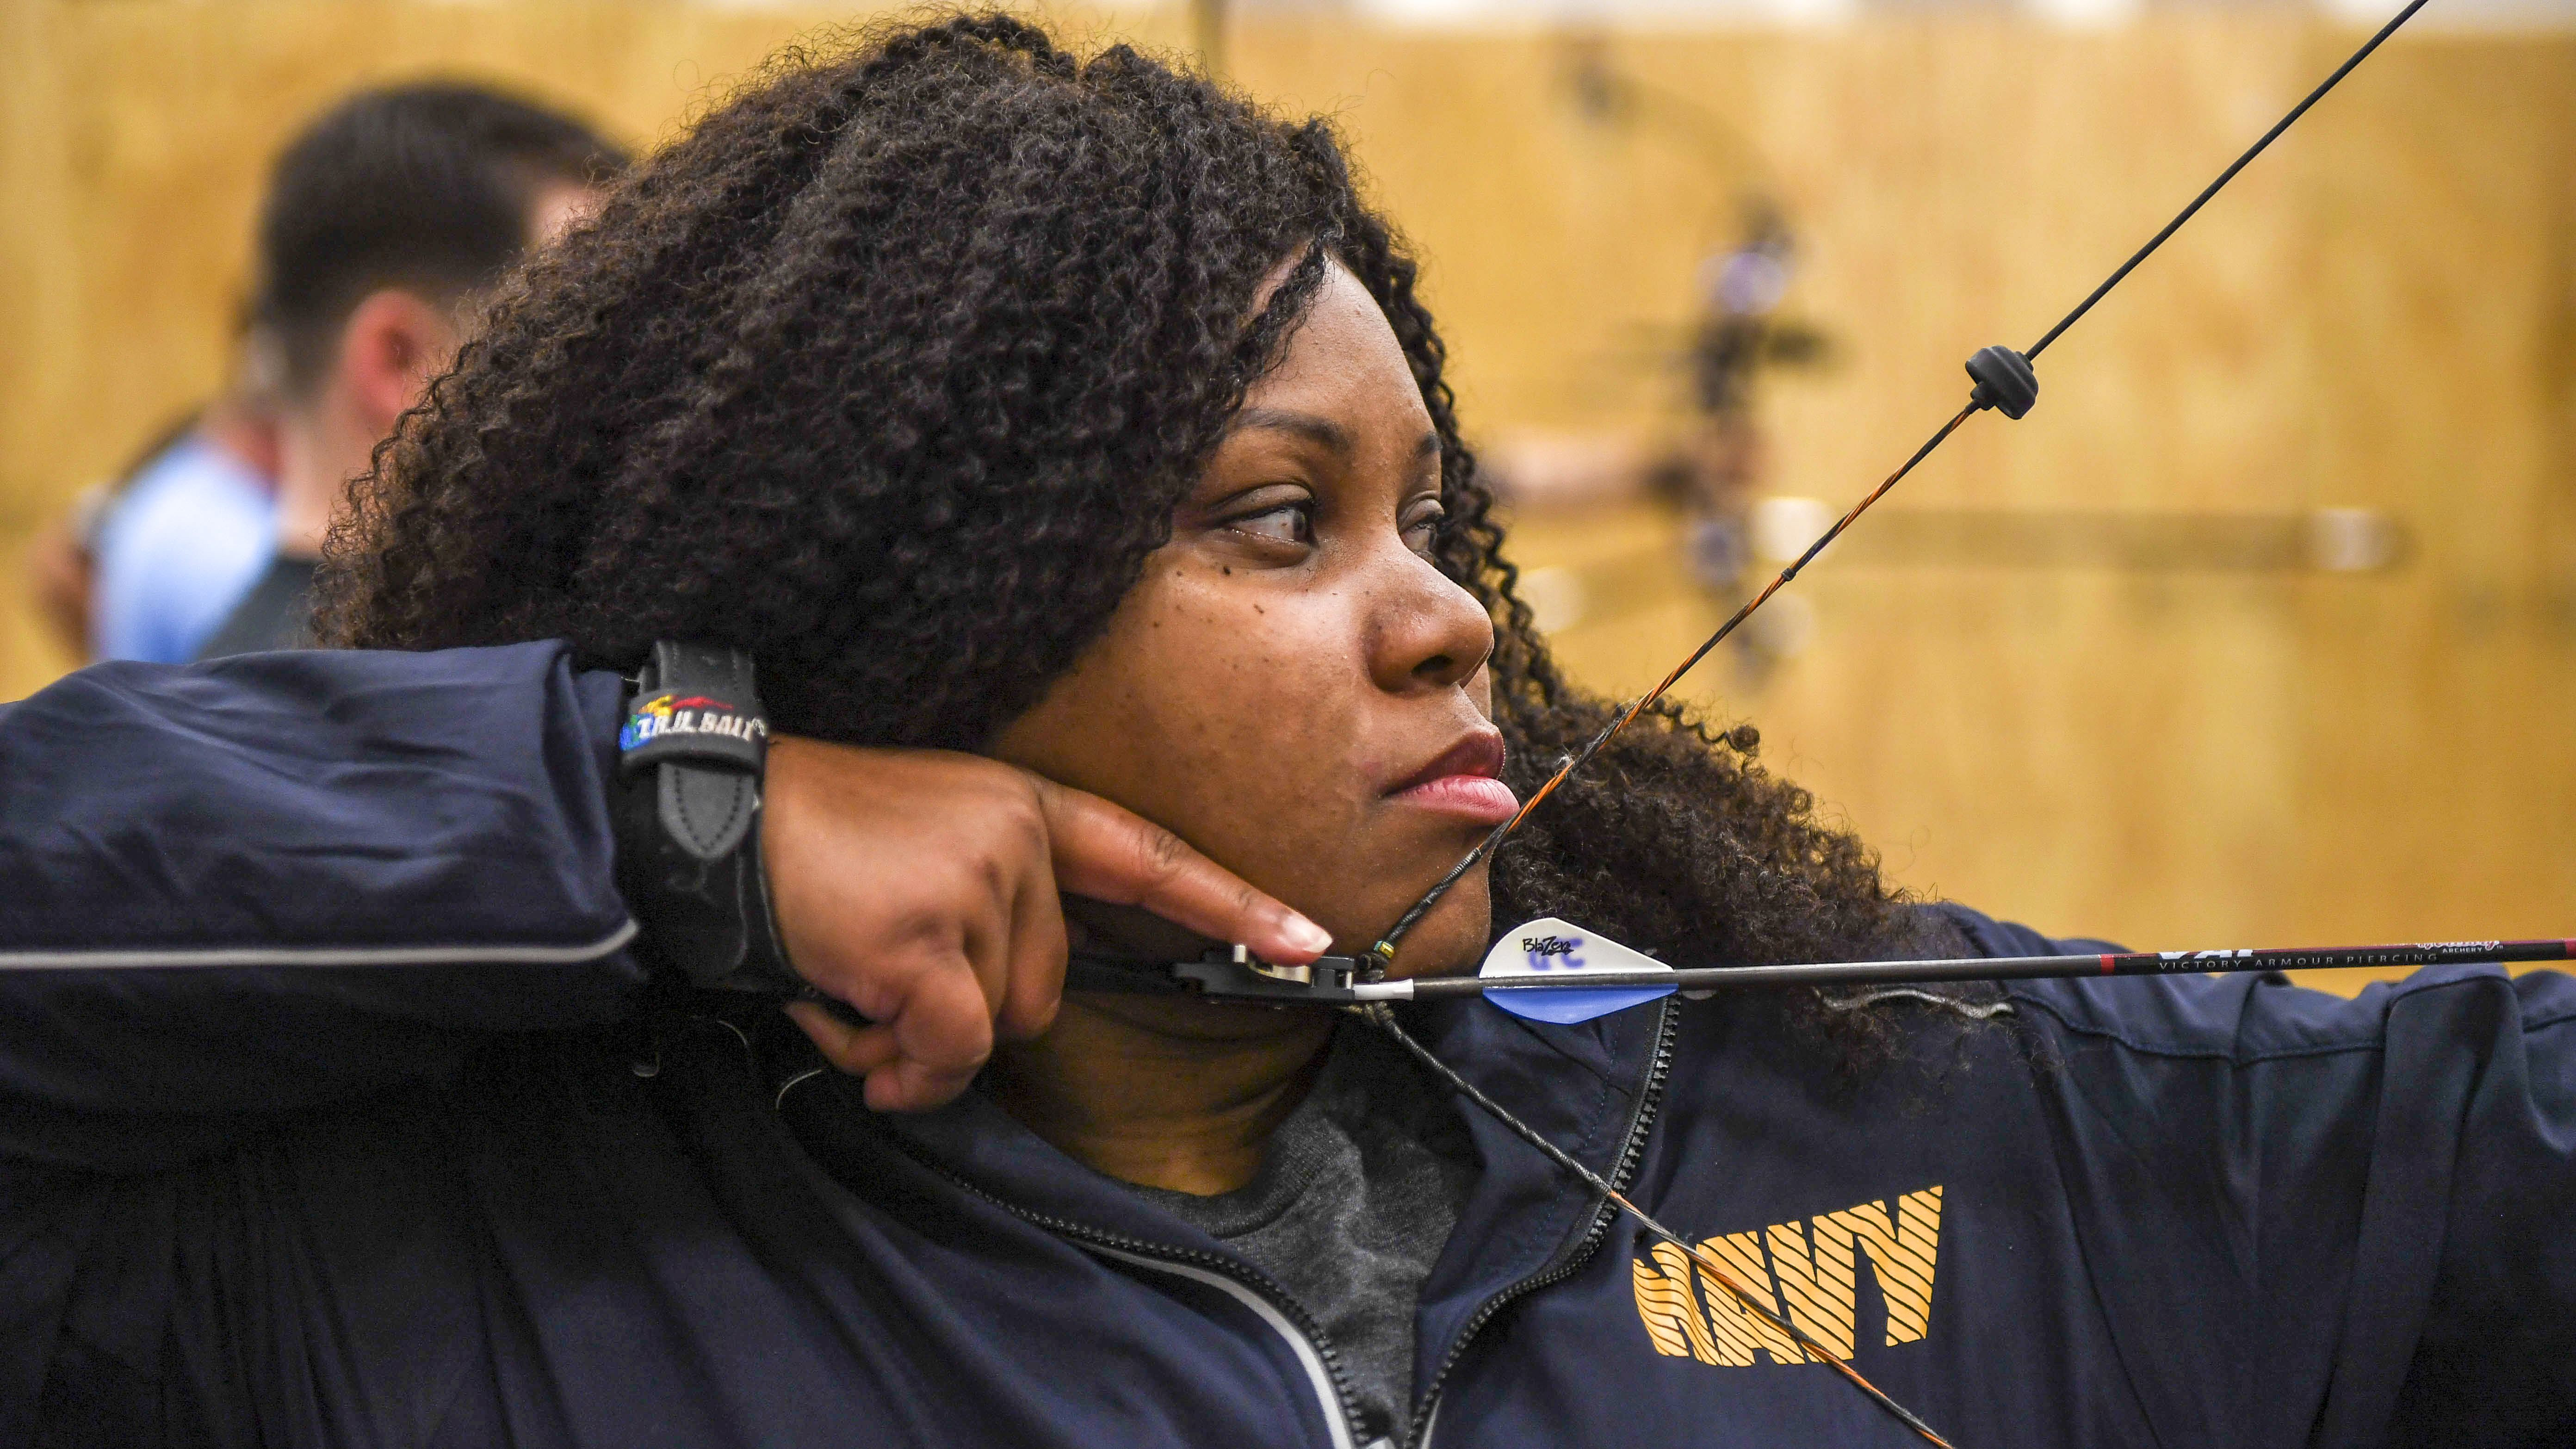 Yeoman 3rd Class Alexis King shoots a bow during archery training prior to the Team Navy trials at Naval Station Mayport's fitness center in preparation for the 2018 Department of Defense Warrior games. Navy Wounded Warrior-Safe Harbor and NAVSTA Mayport are hosting the trials, in which athletes will qualify in eight adaptive sports: archery, track and field, cycling, wheelchair basketball, shooting, sitting volleyball, and swimming. The top performing athletes will fill 40 competitive spots and five alternative spots for Team Navy at the 2018 Department of Defense Warrior Games. (MC2 Michael Lopez/Navy)